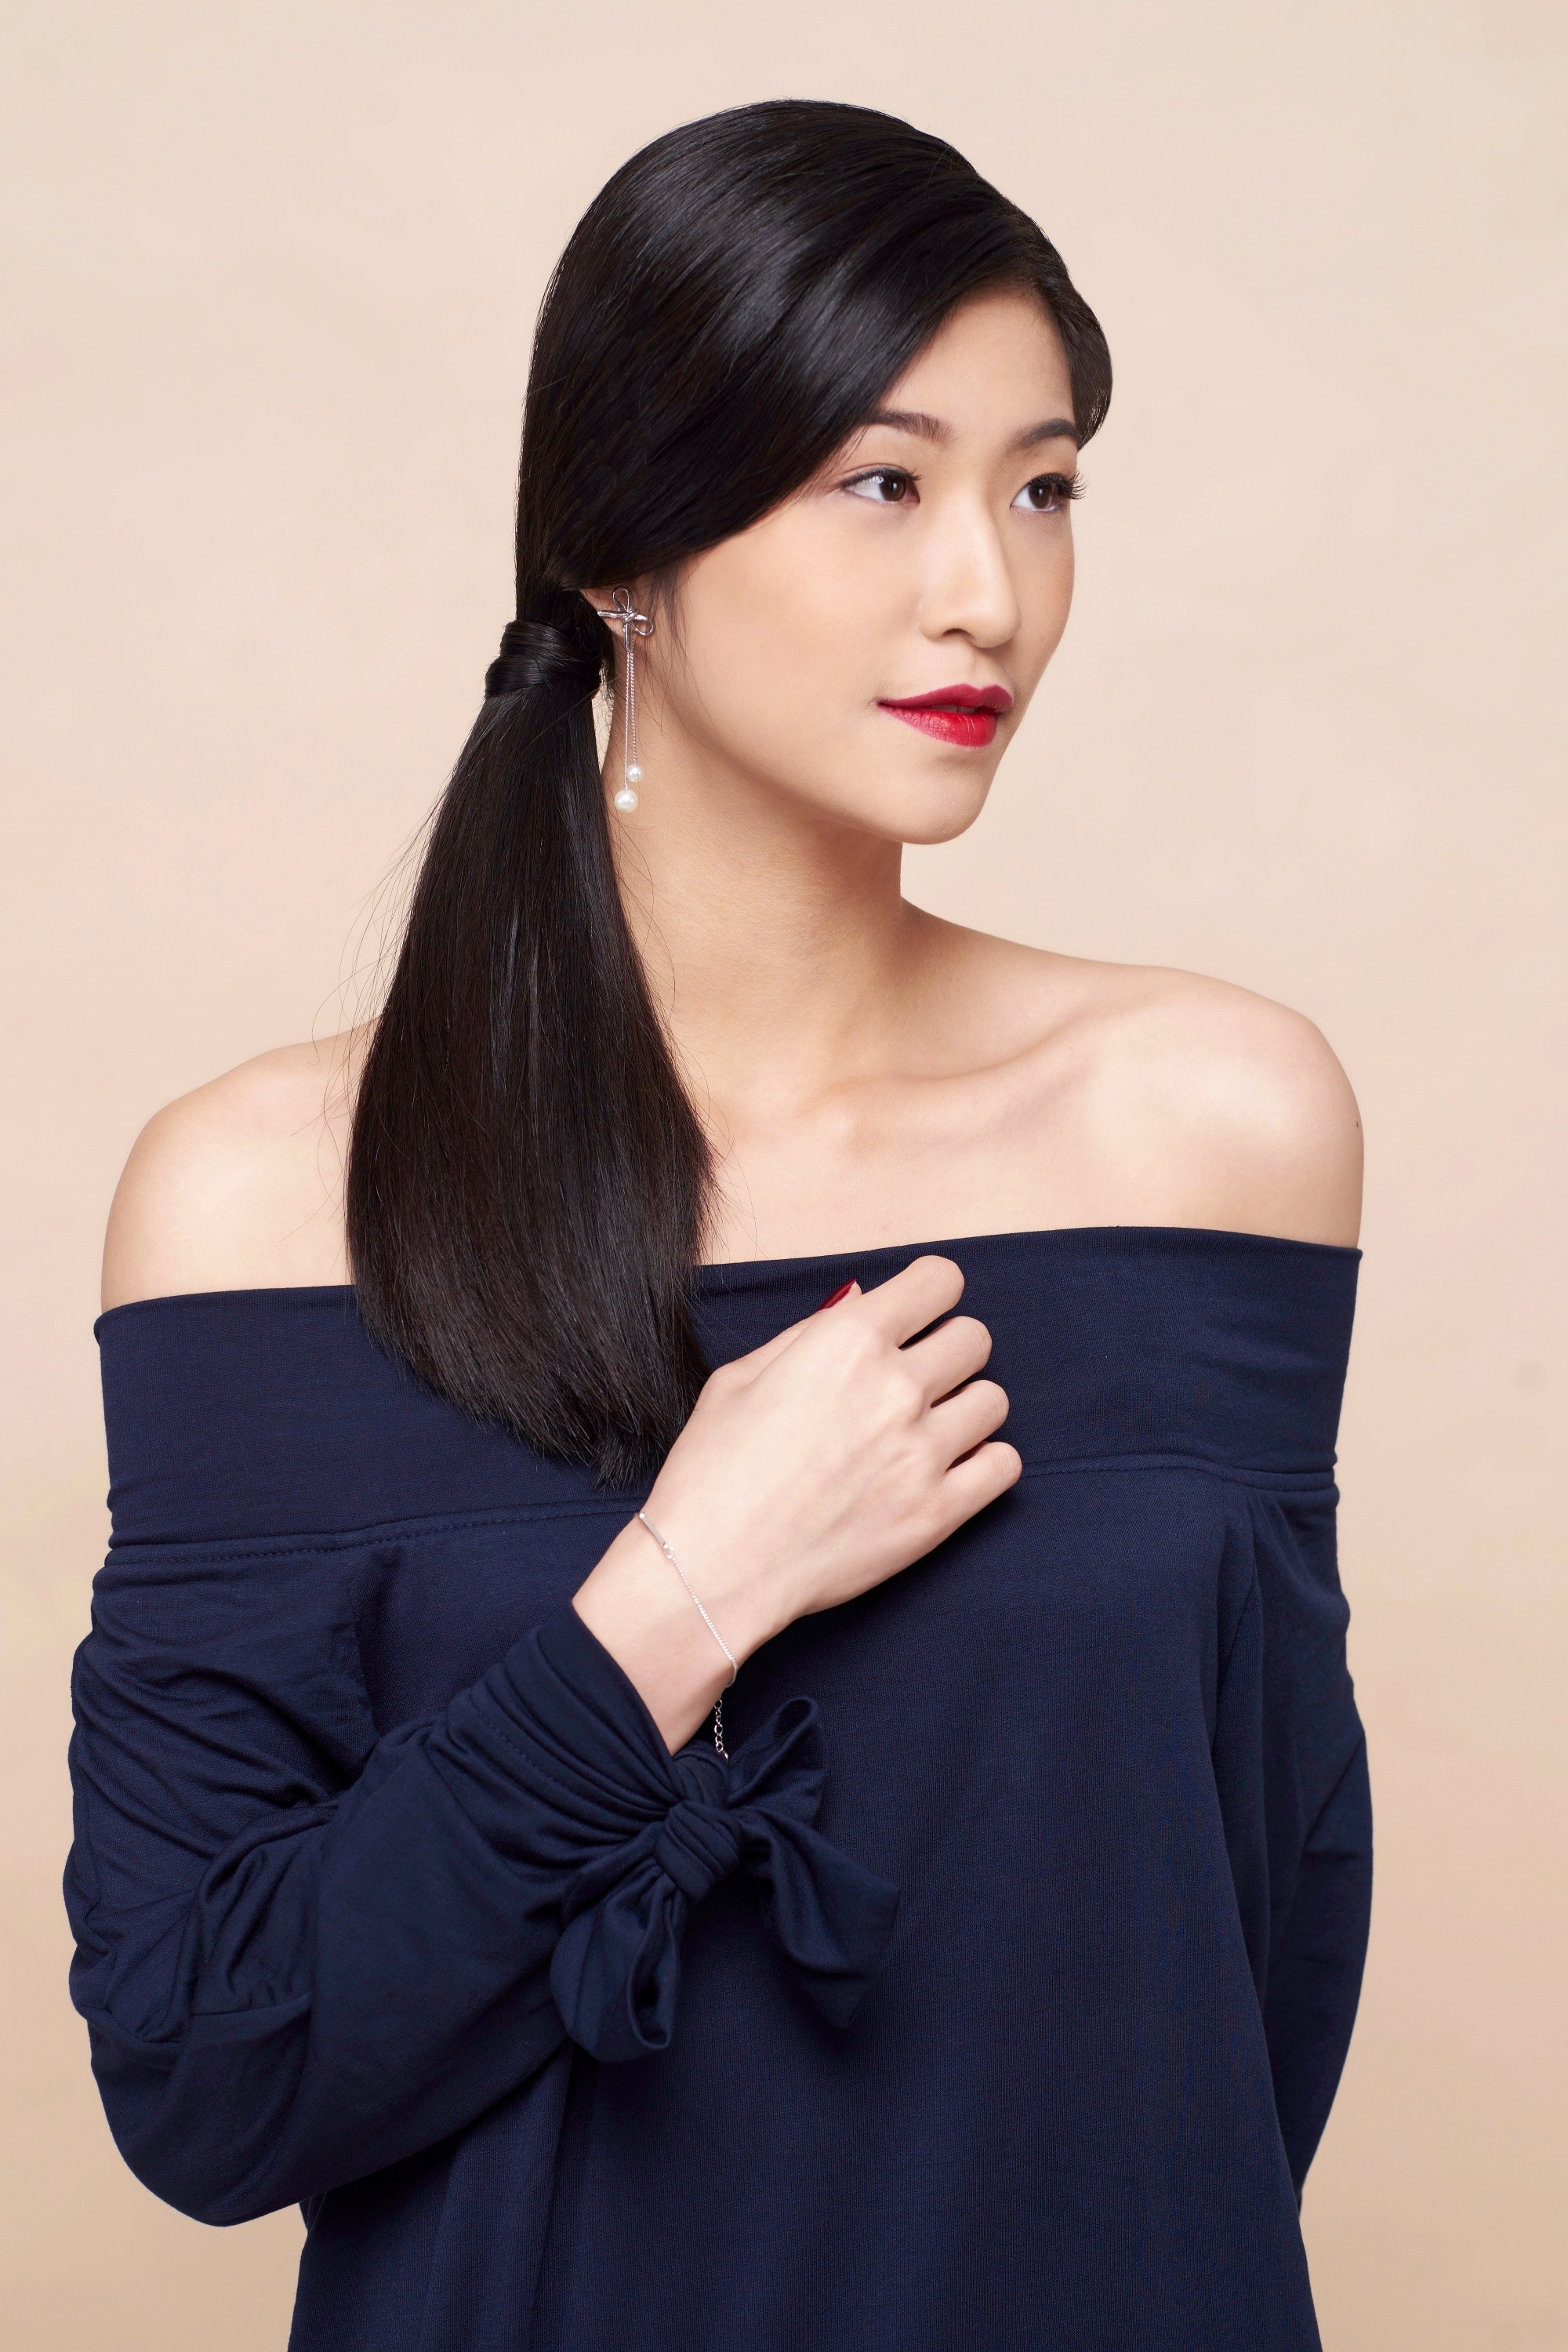 Sleek tied hair: Asian woman with long black hair in a side ponytail wearing a dark blue off-shoulder blouse